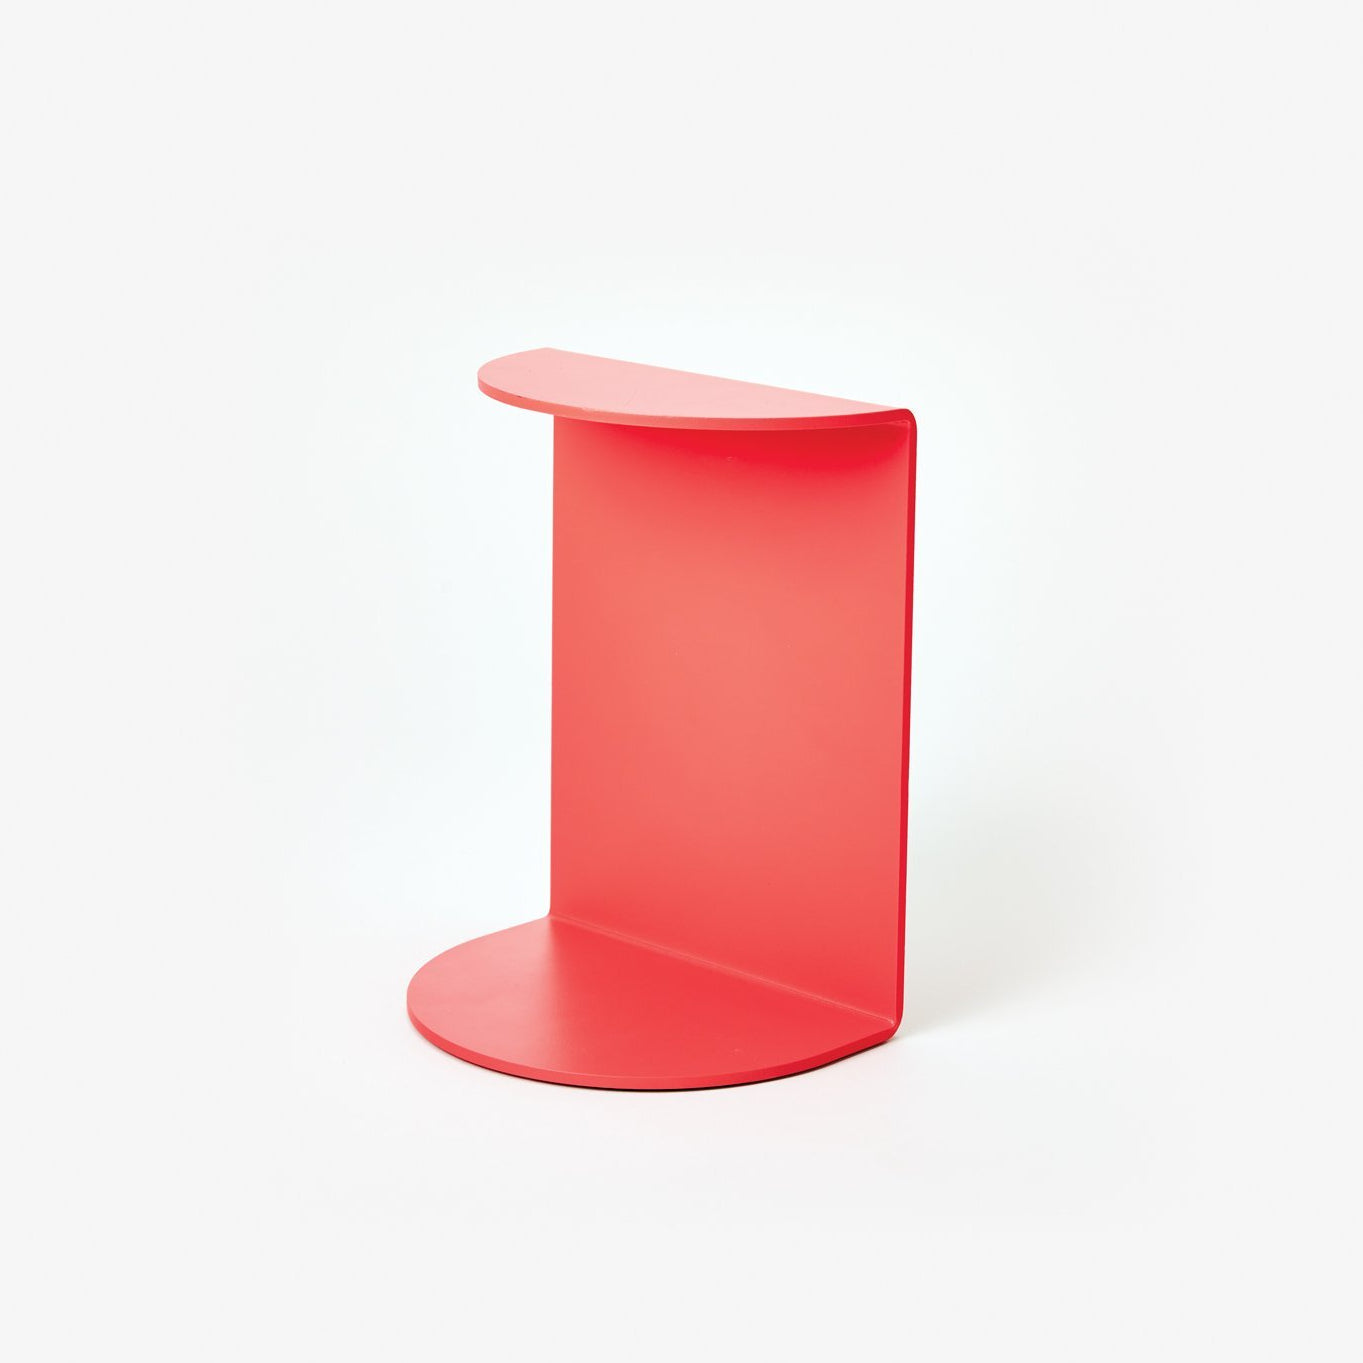 Areaware Reference Bookend Red Powder Coated Iron by Henry Julier